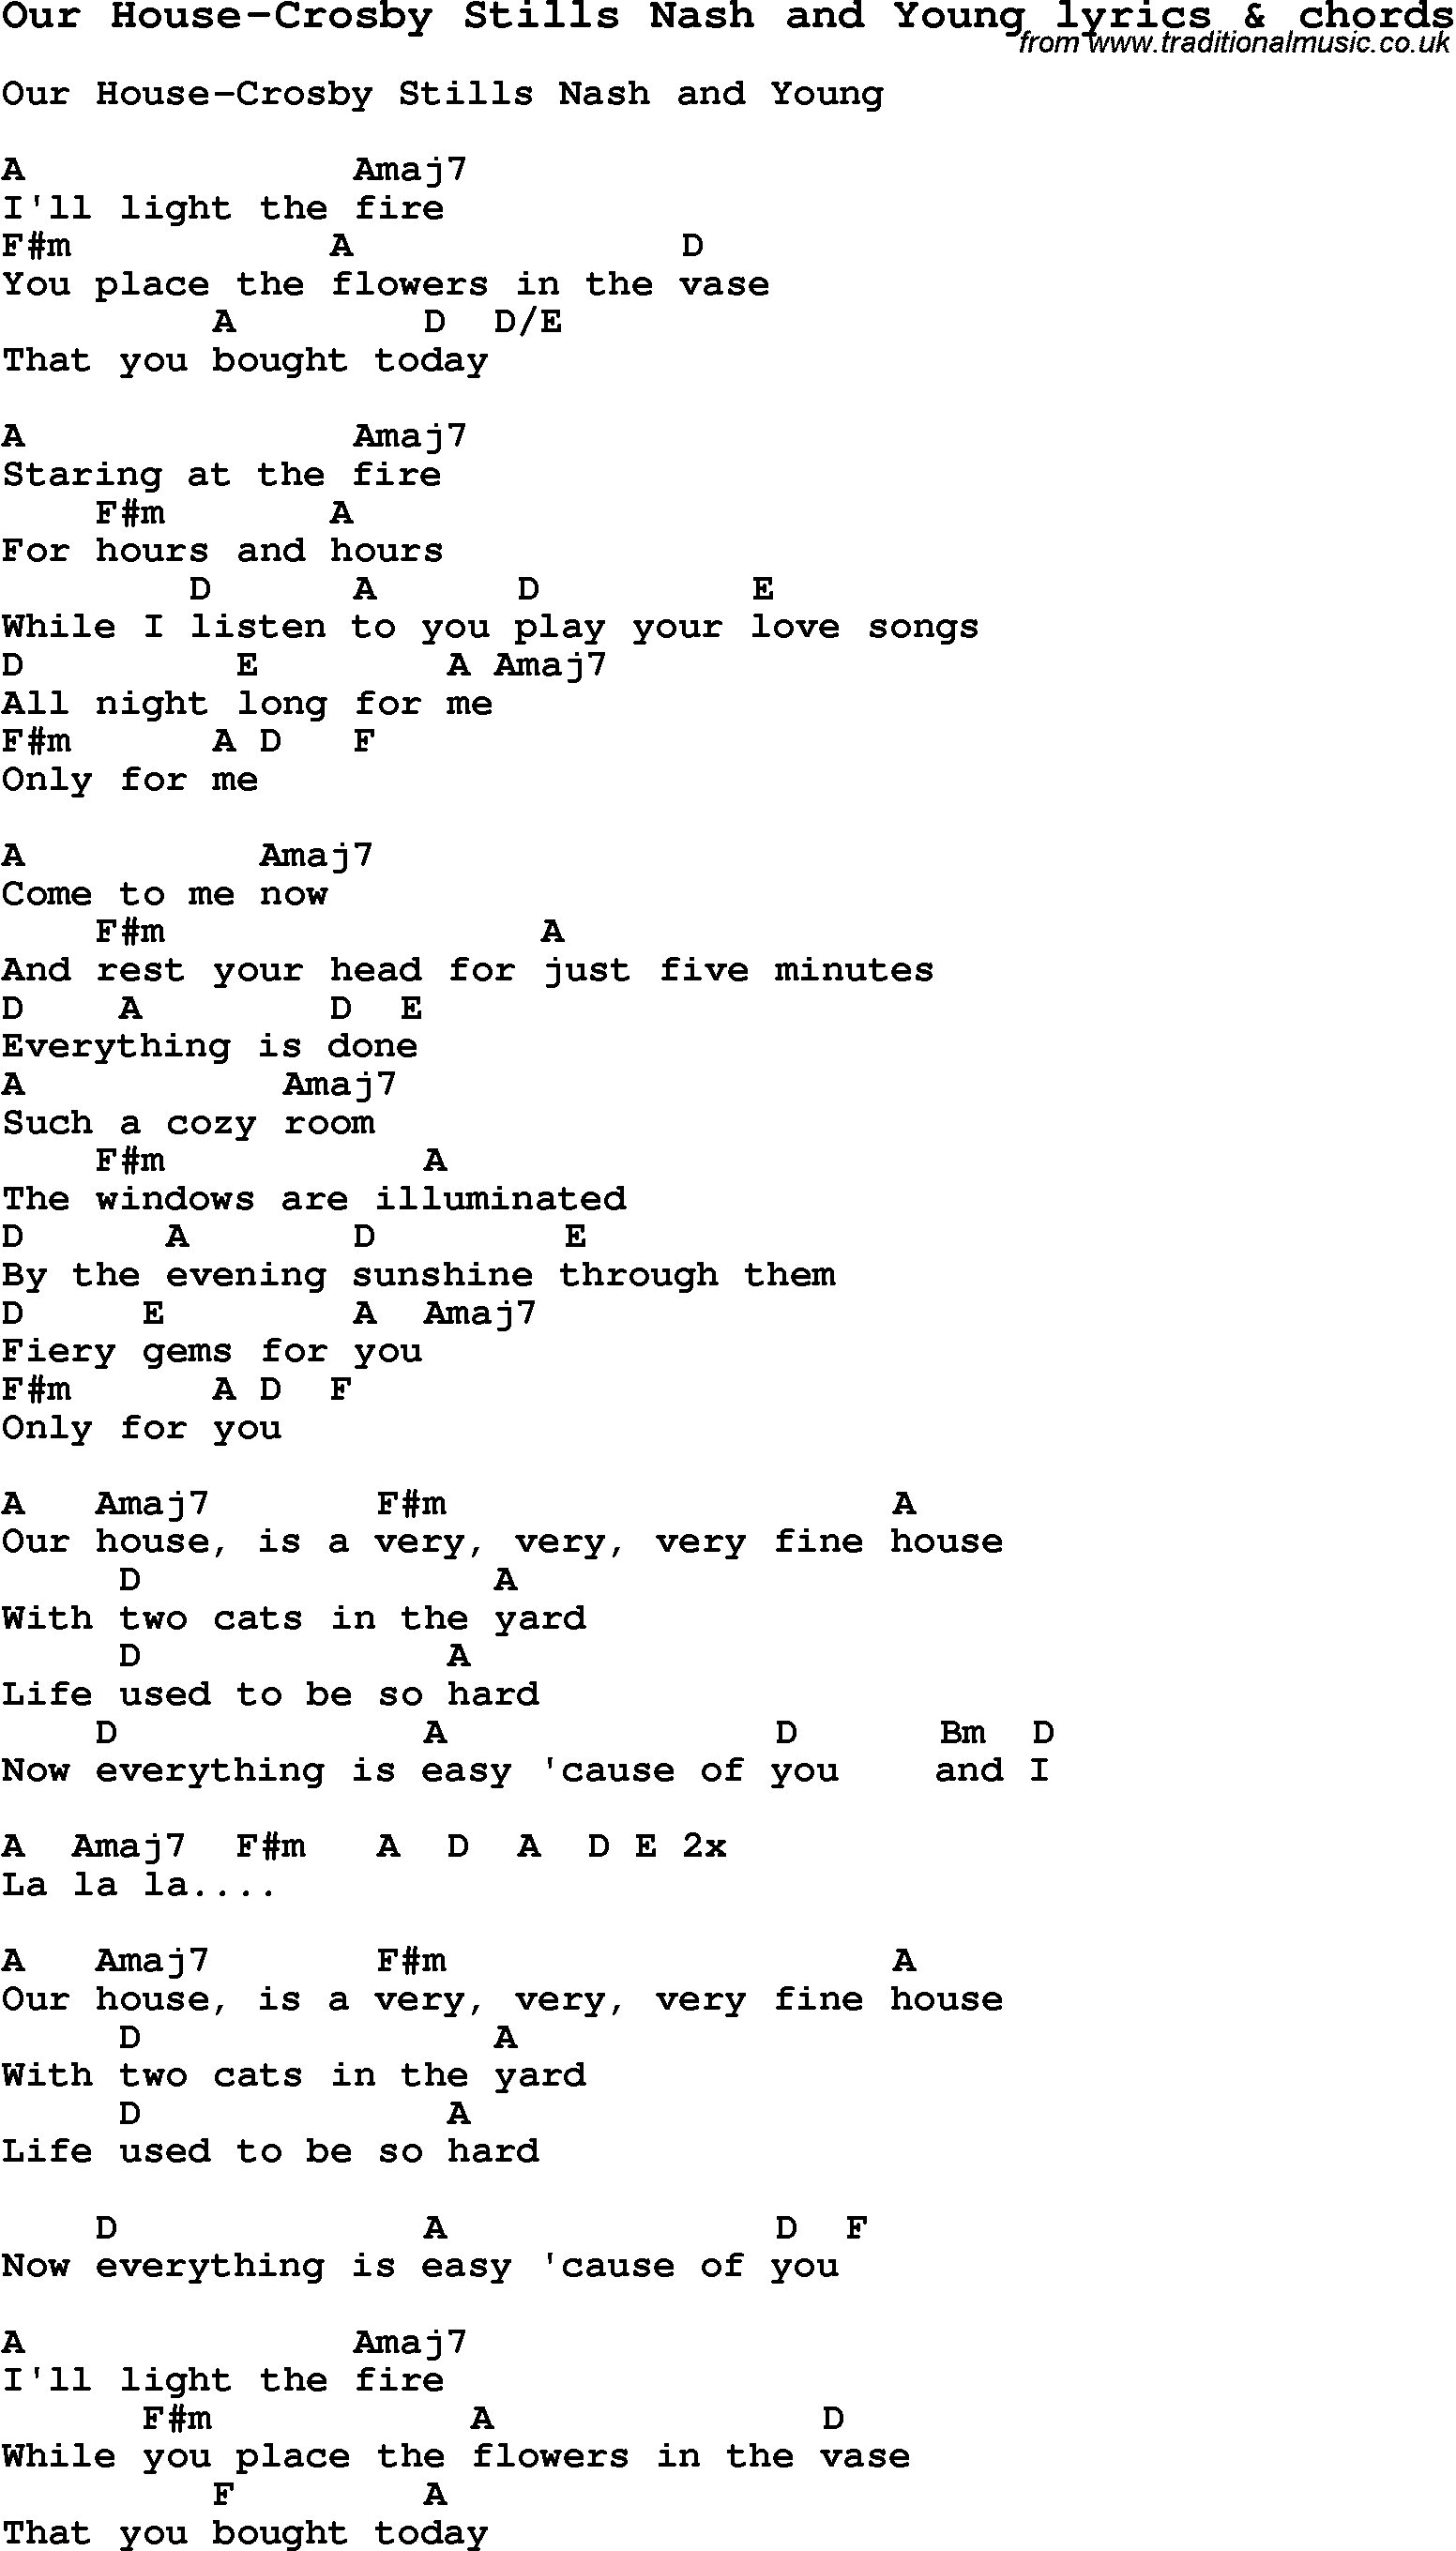 Love song lyrics for our house crosby stills nash and for Classic house chords